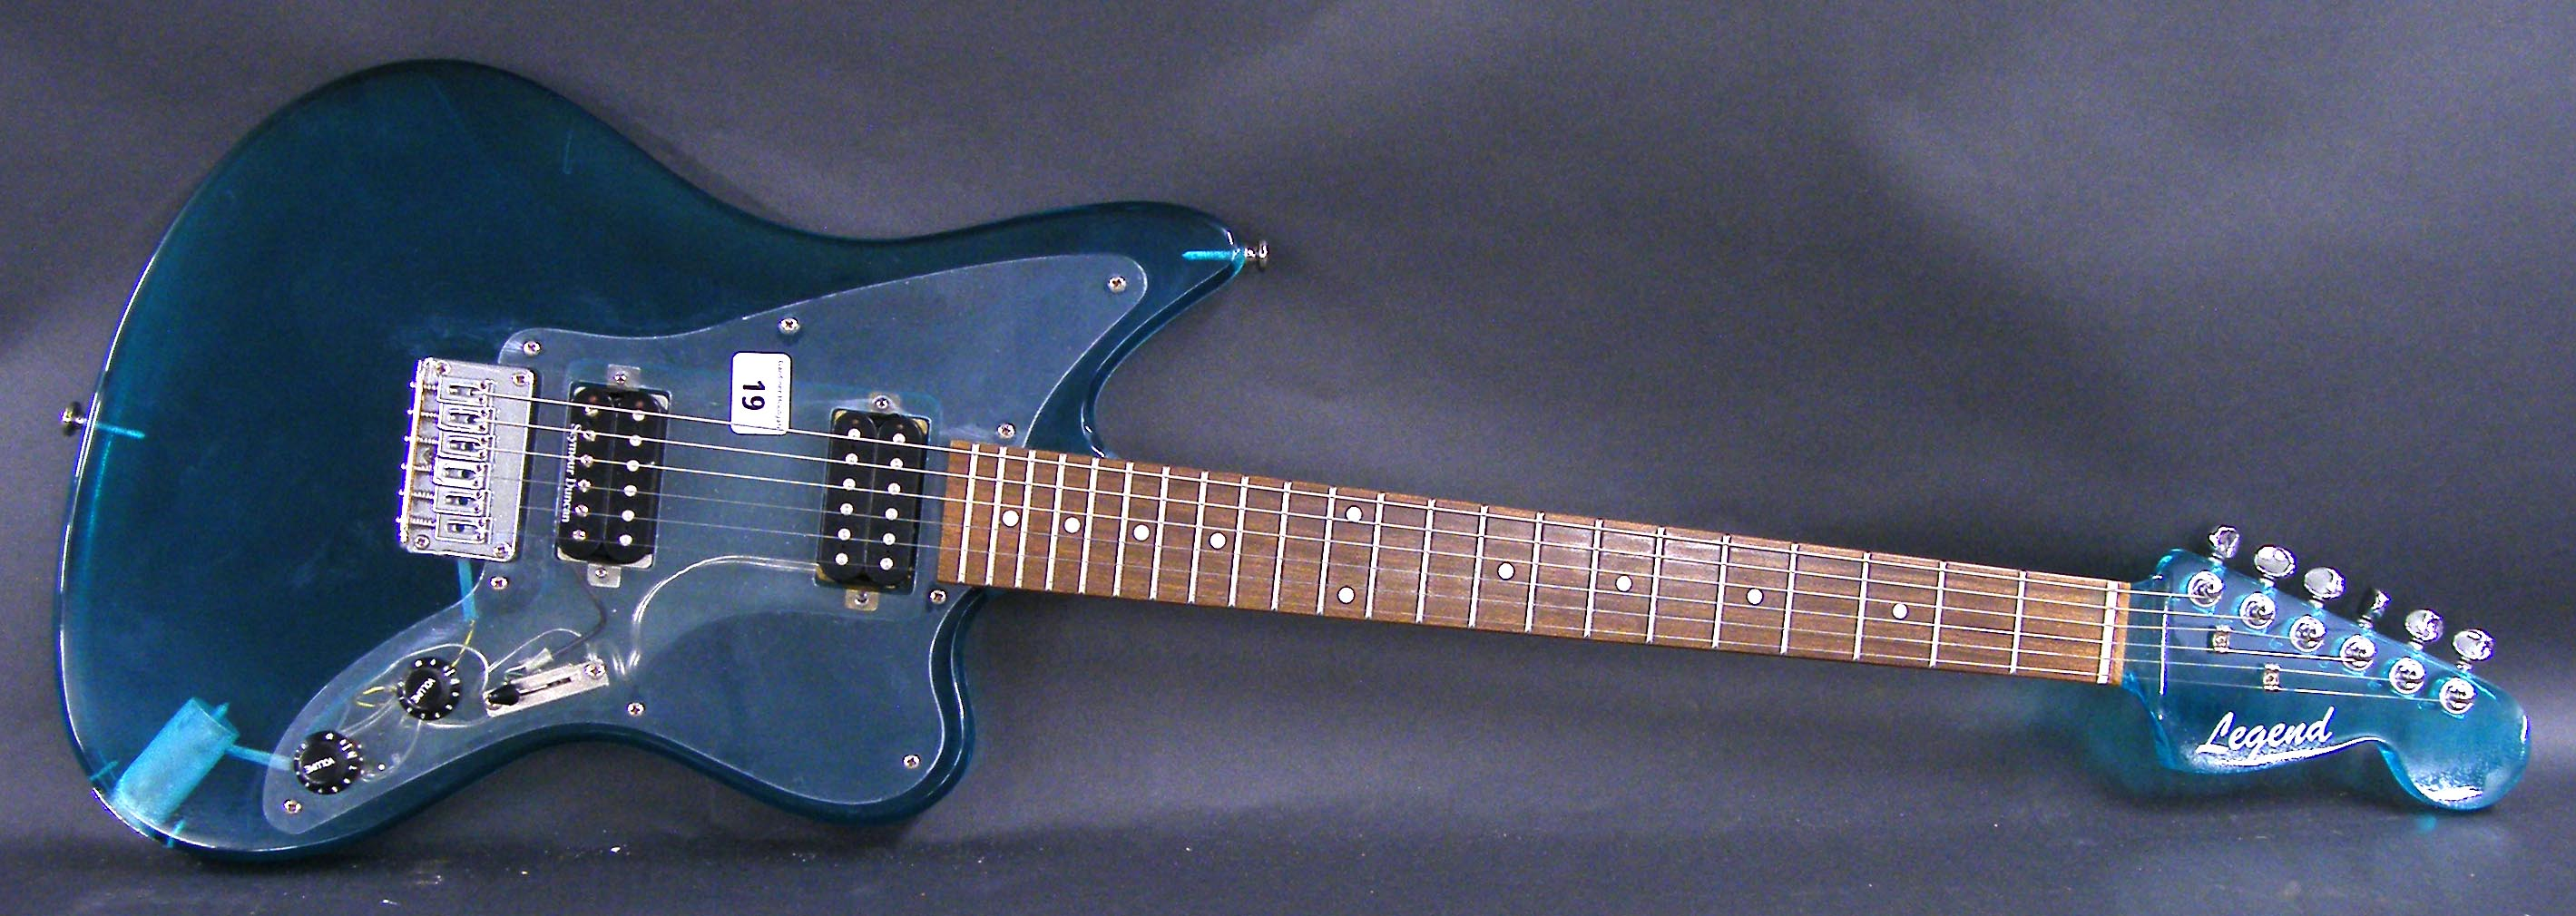 Lot 19 - Legend Jagmaster style Plexiglass electric guitar, clear turquoise Perspex finish with matching